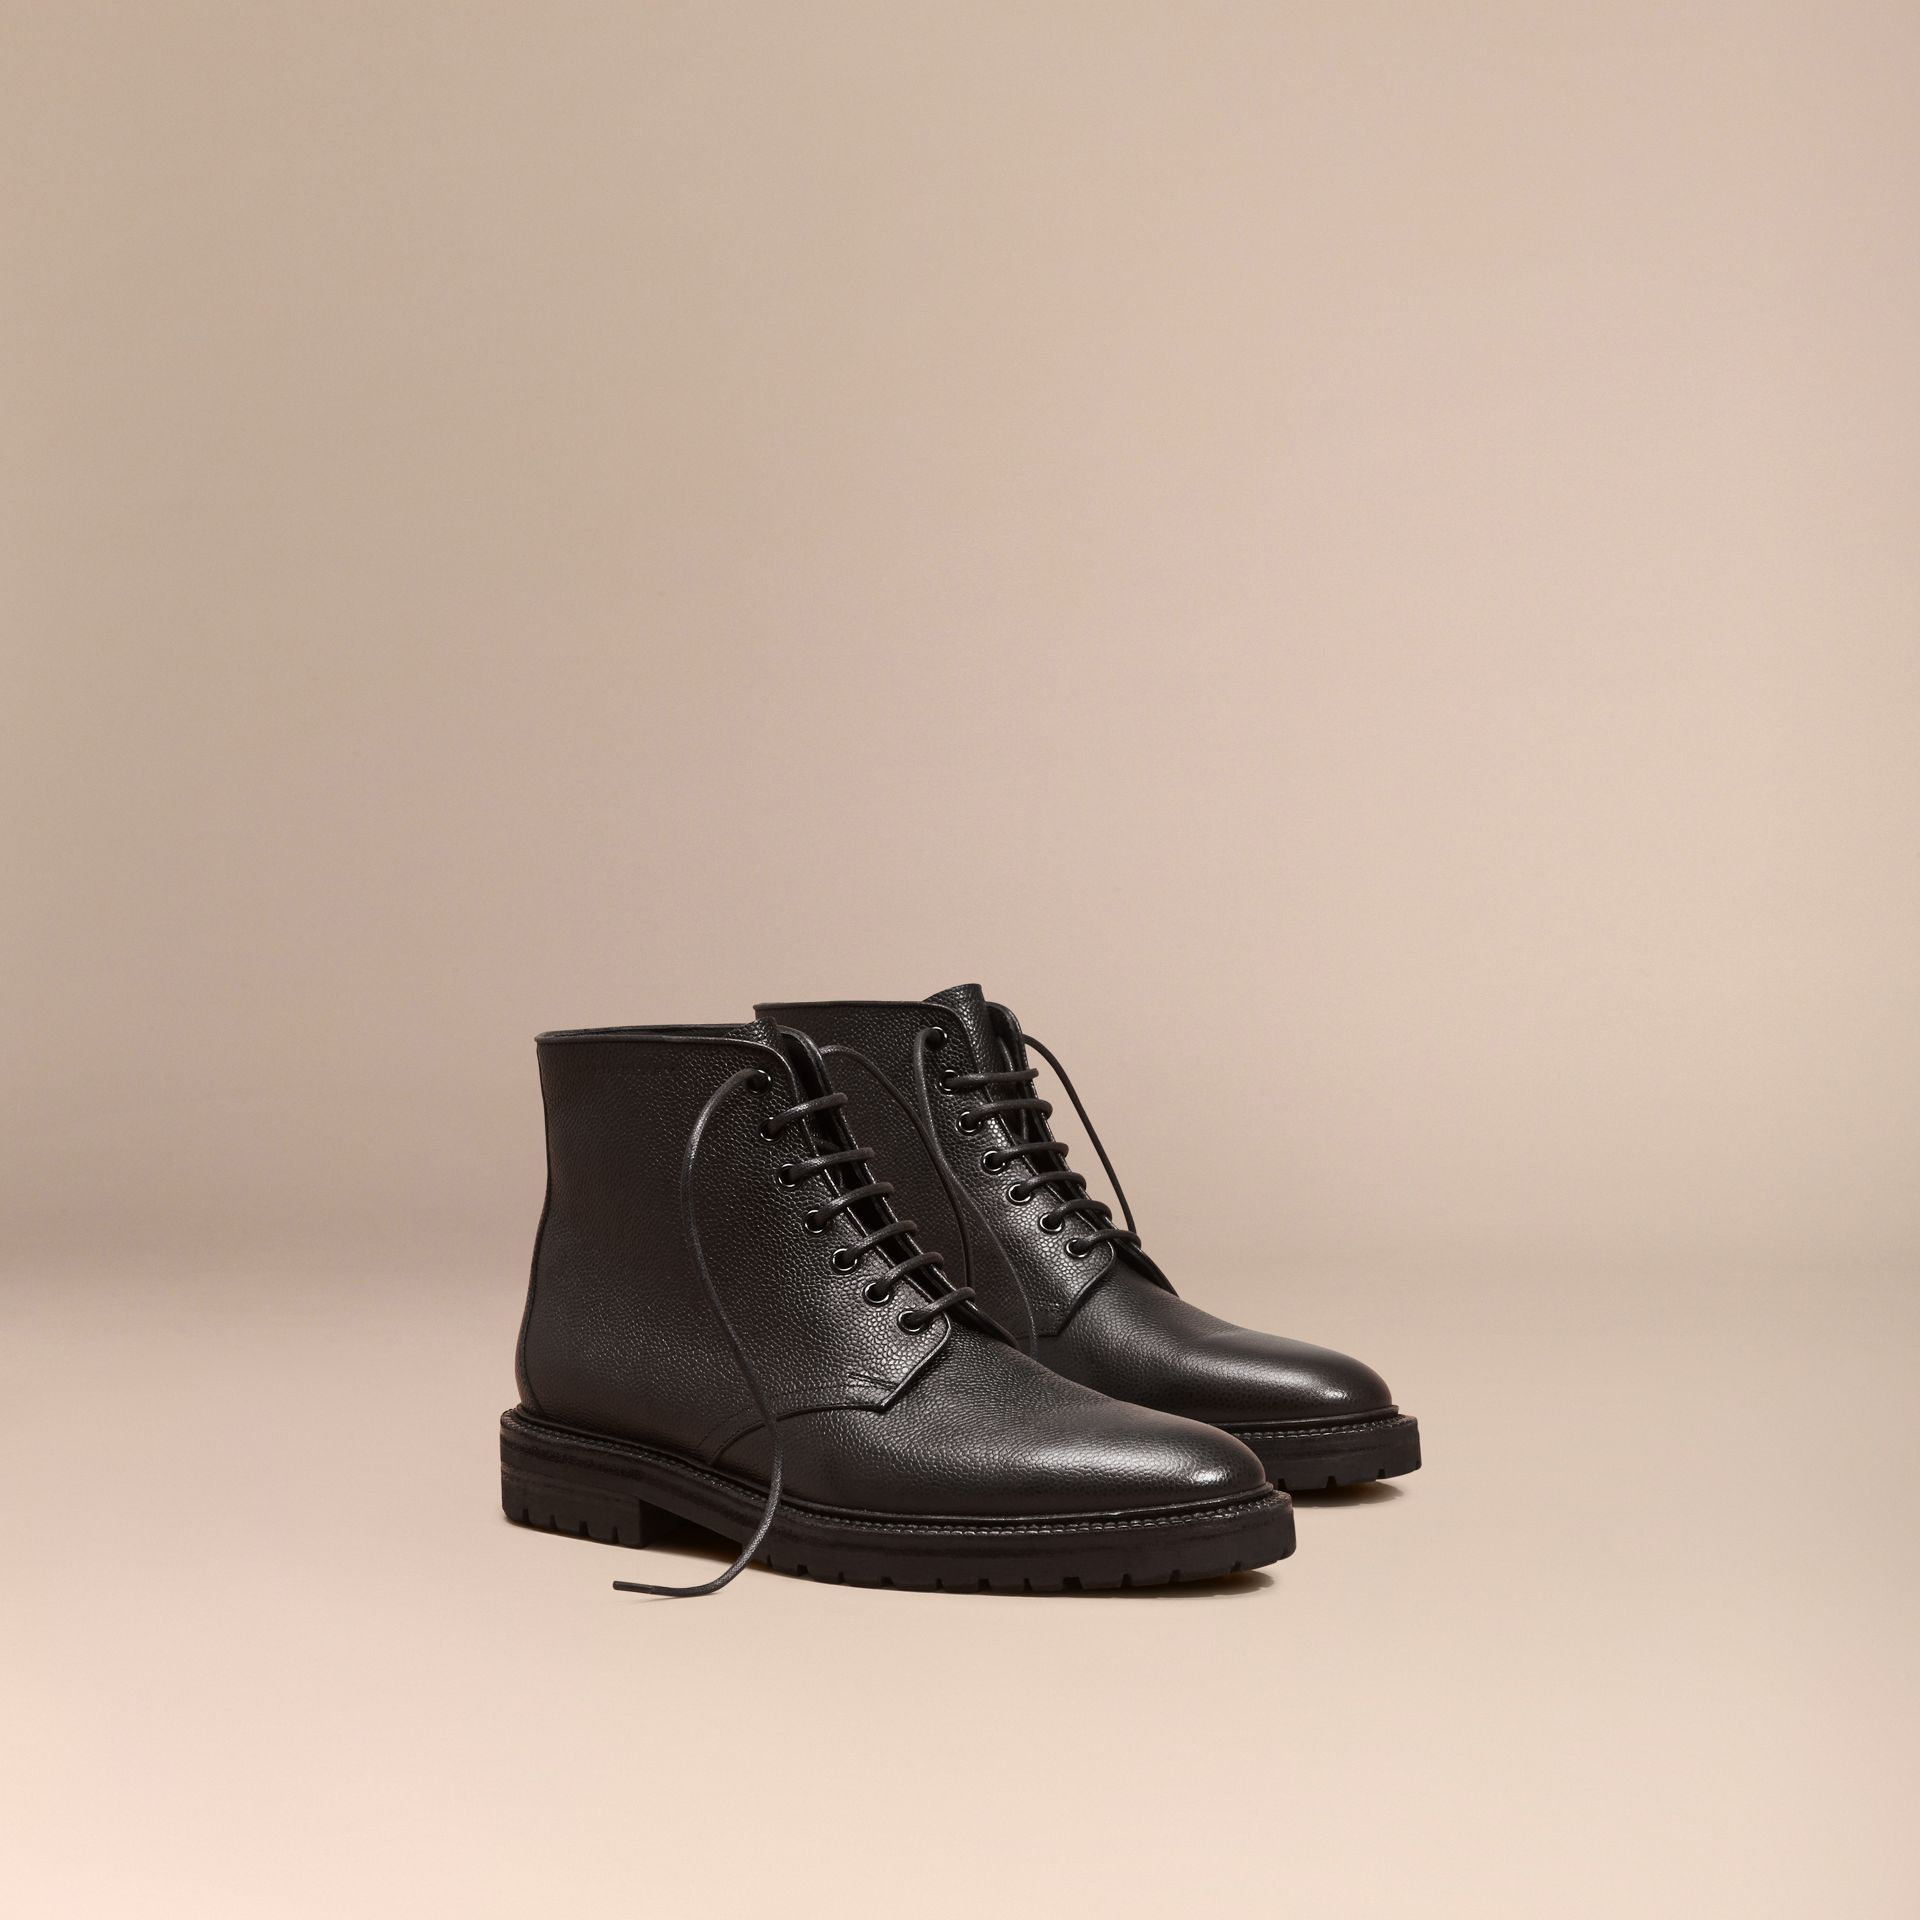 Black Lace-up Grainy Leather Boots Black - gallery image 1